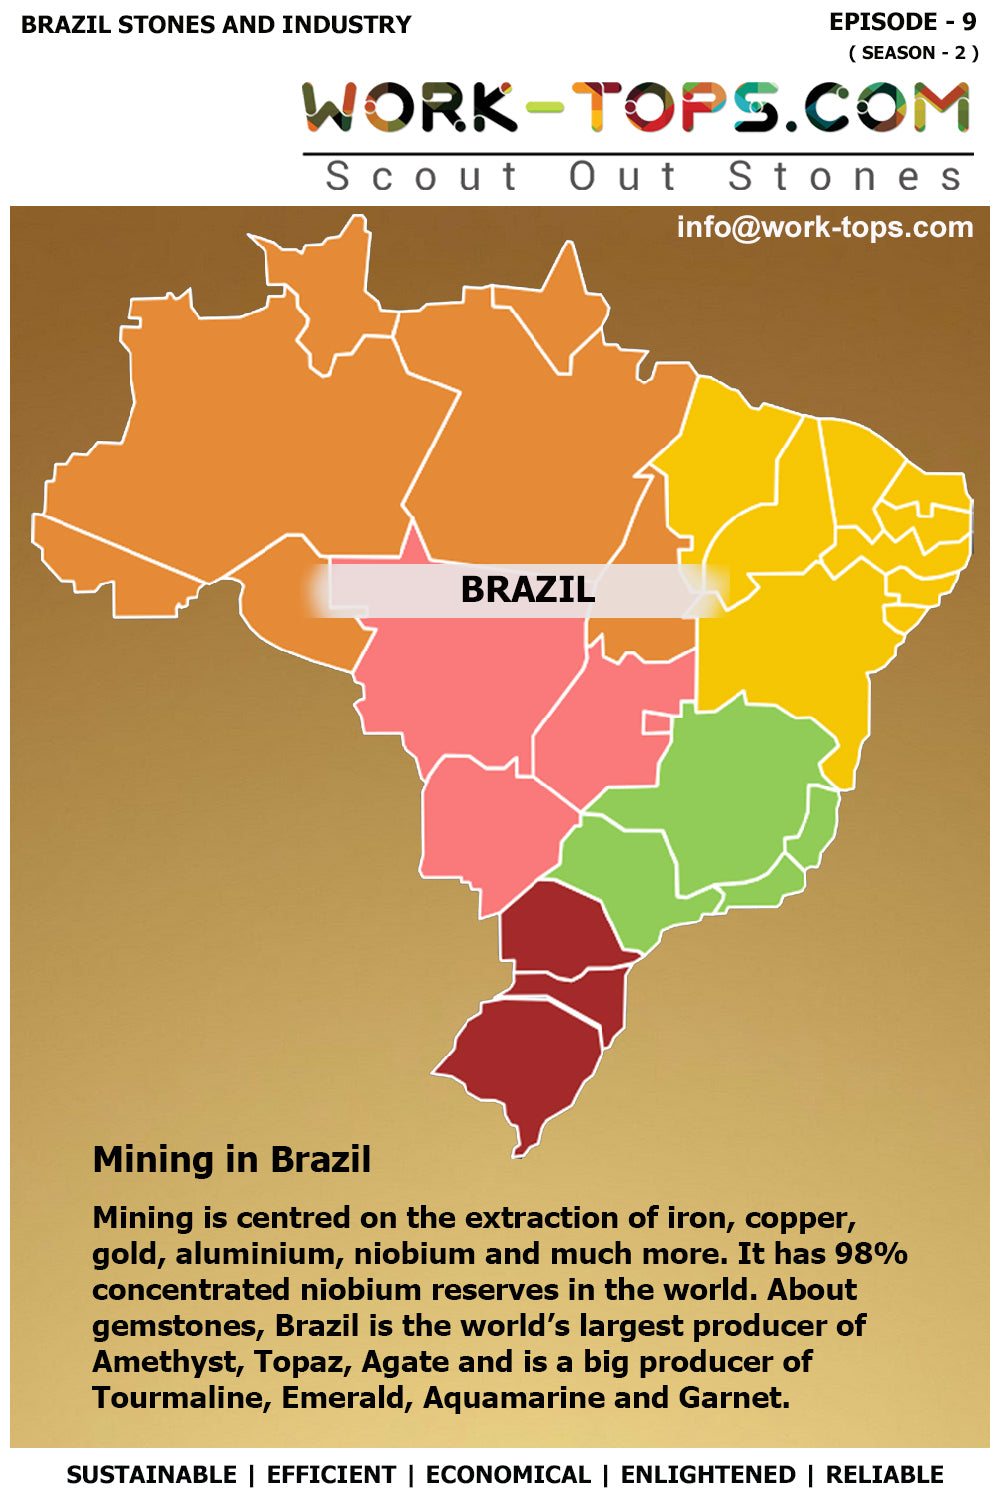 Brazil Stones And Industry Episode 09